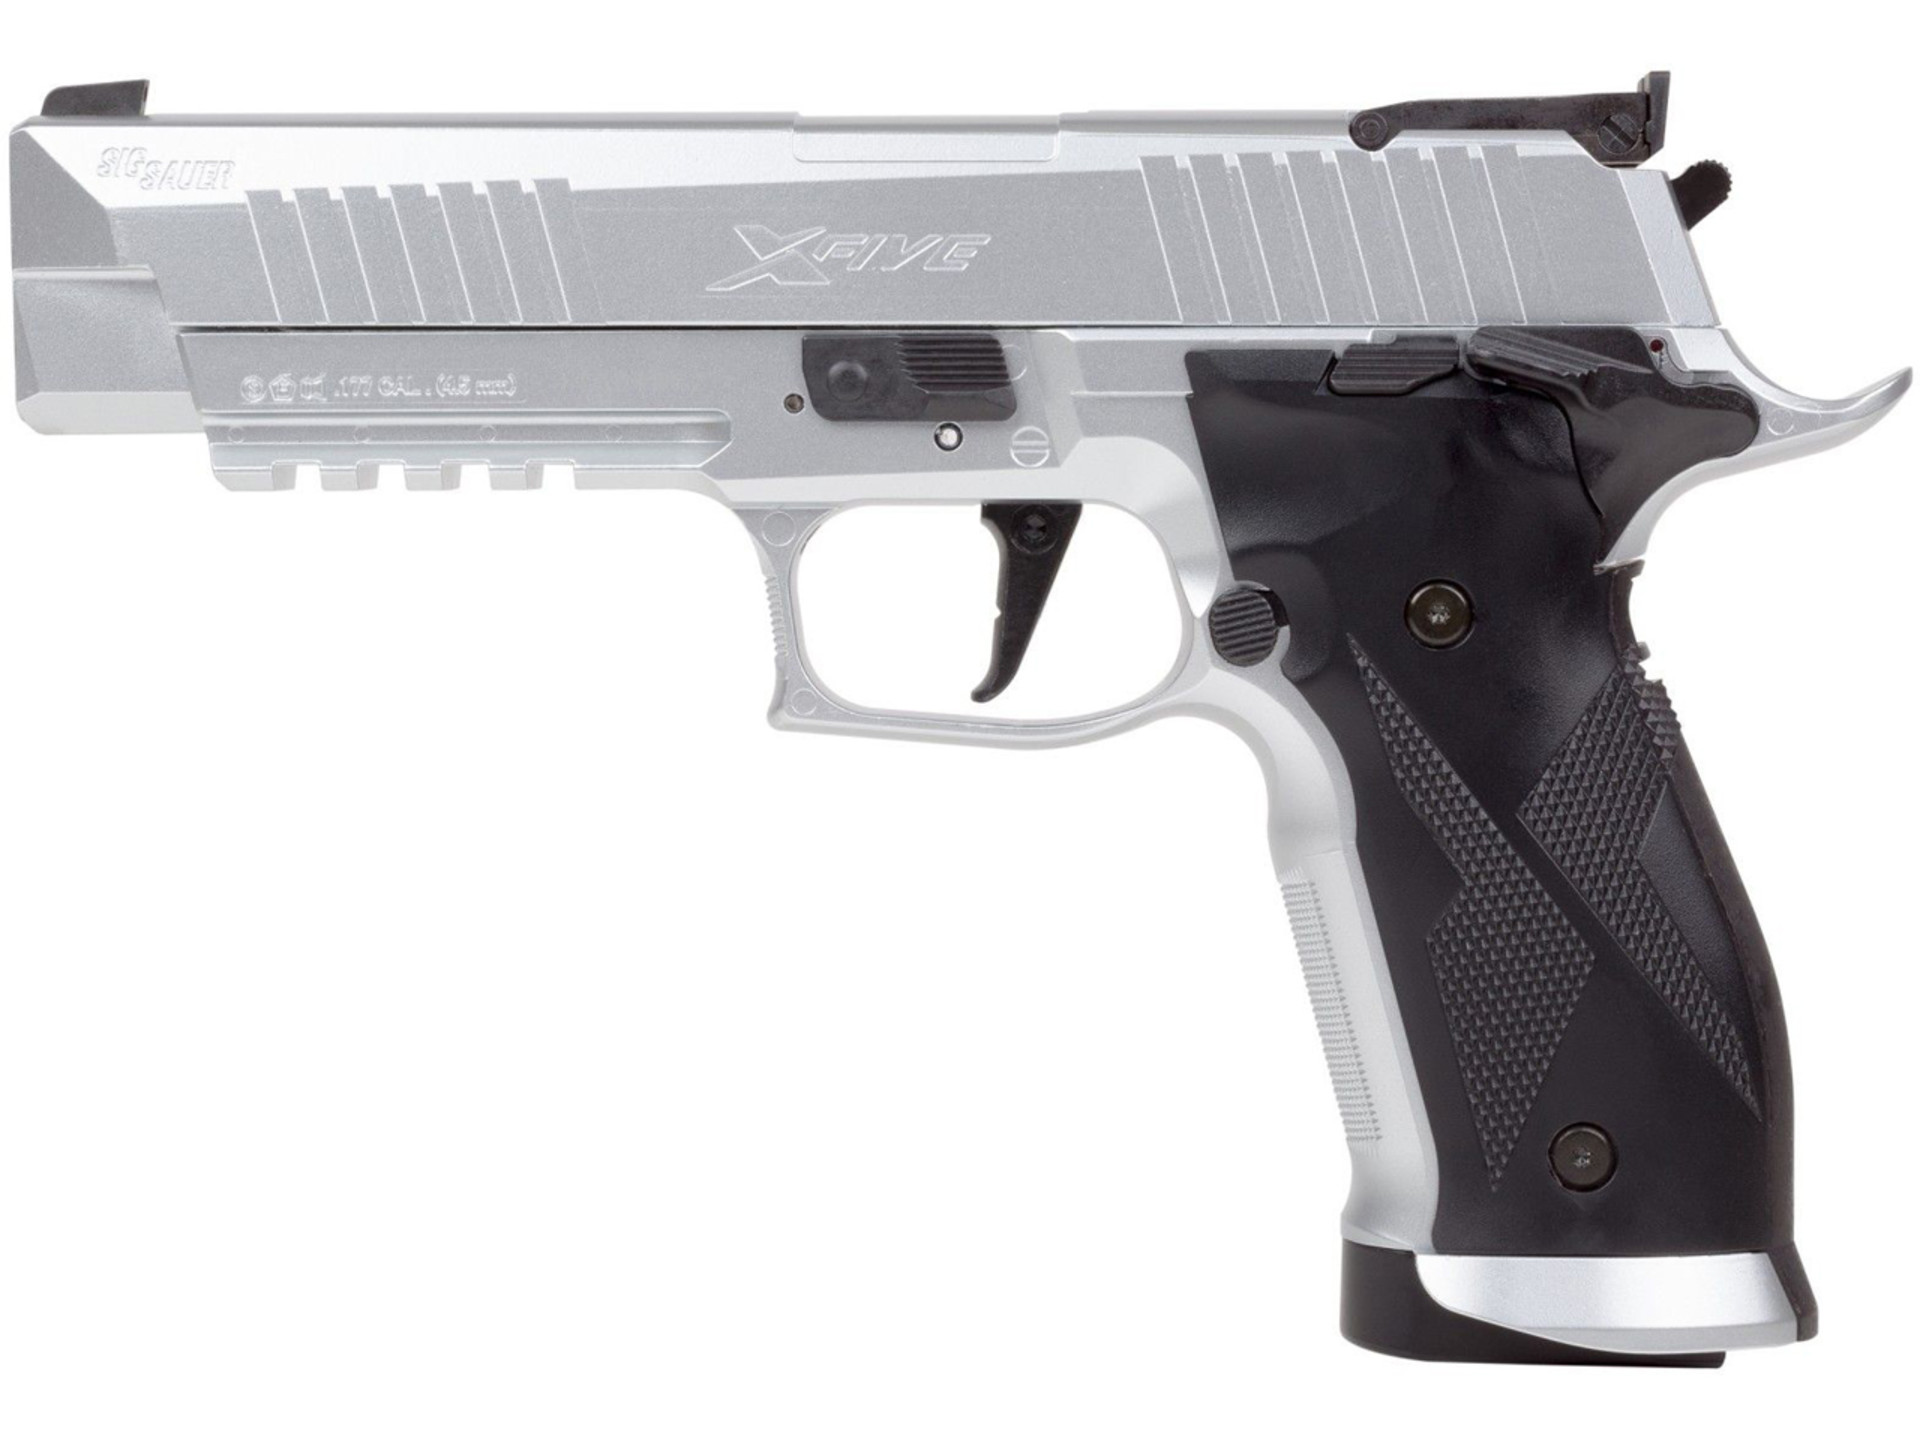 Vzduchová pistole Sig Sauer X-Five silver-cal.4,5mm